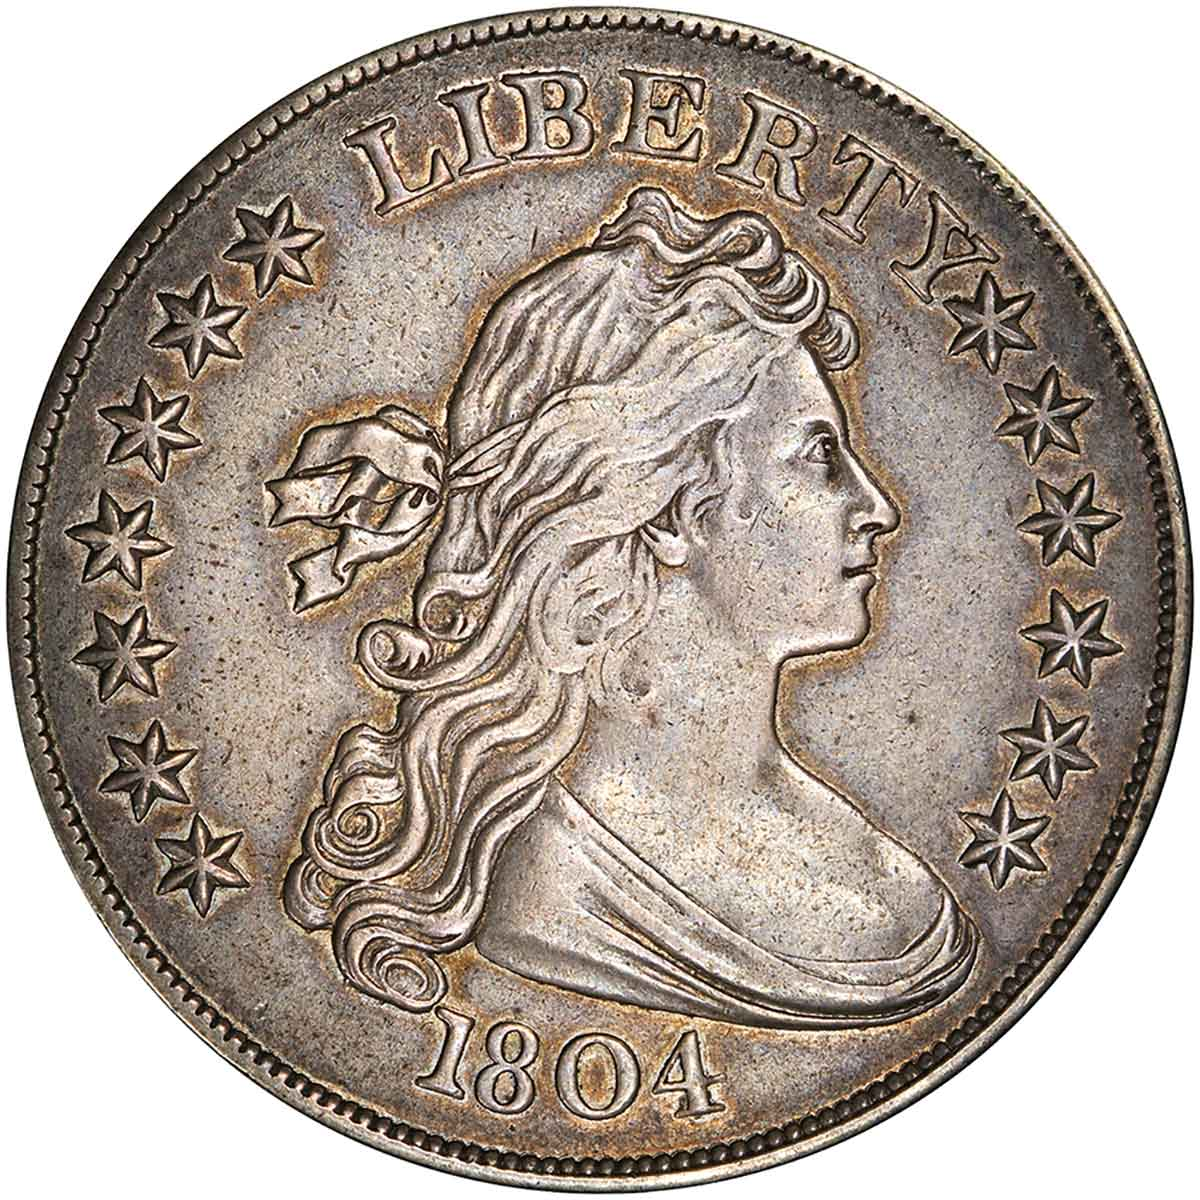 1804 Draped Bust Silver Dollar. Class III Restrike. BB-306. Second Reverse. Proof-55 (PCGS). obverse